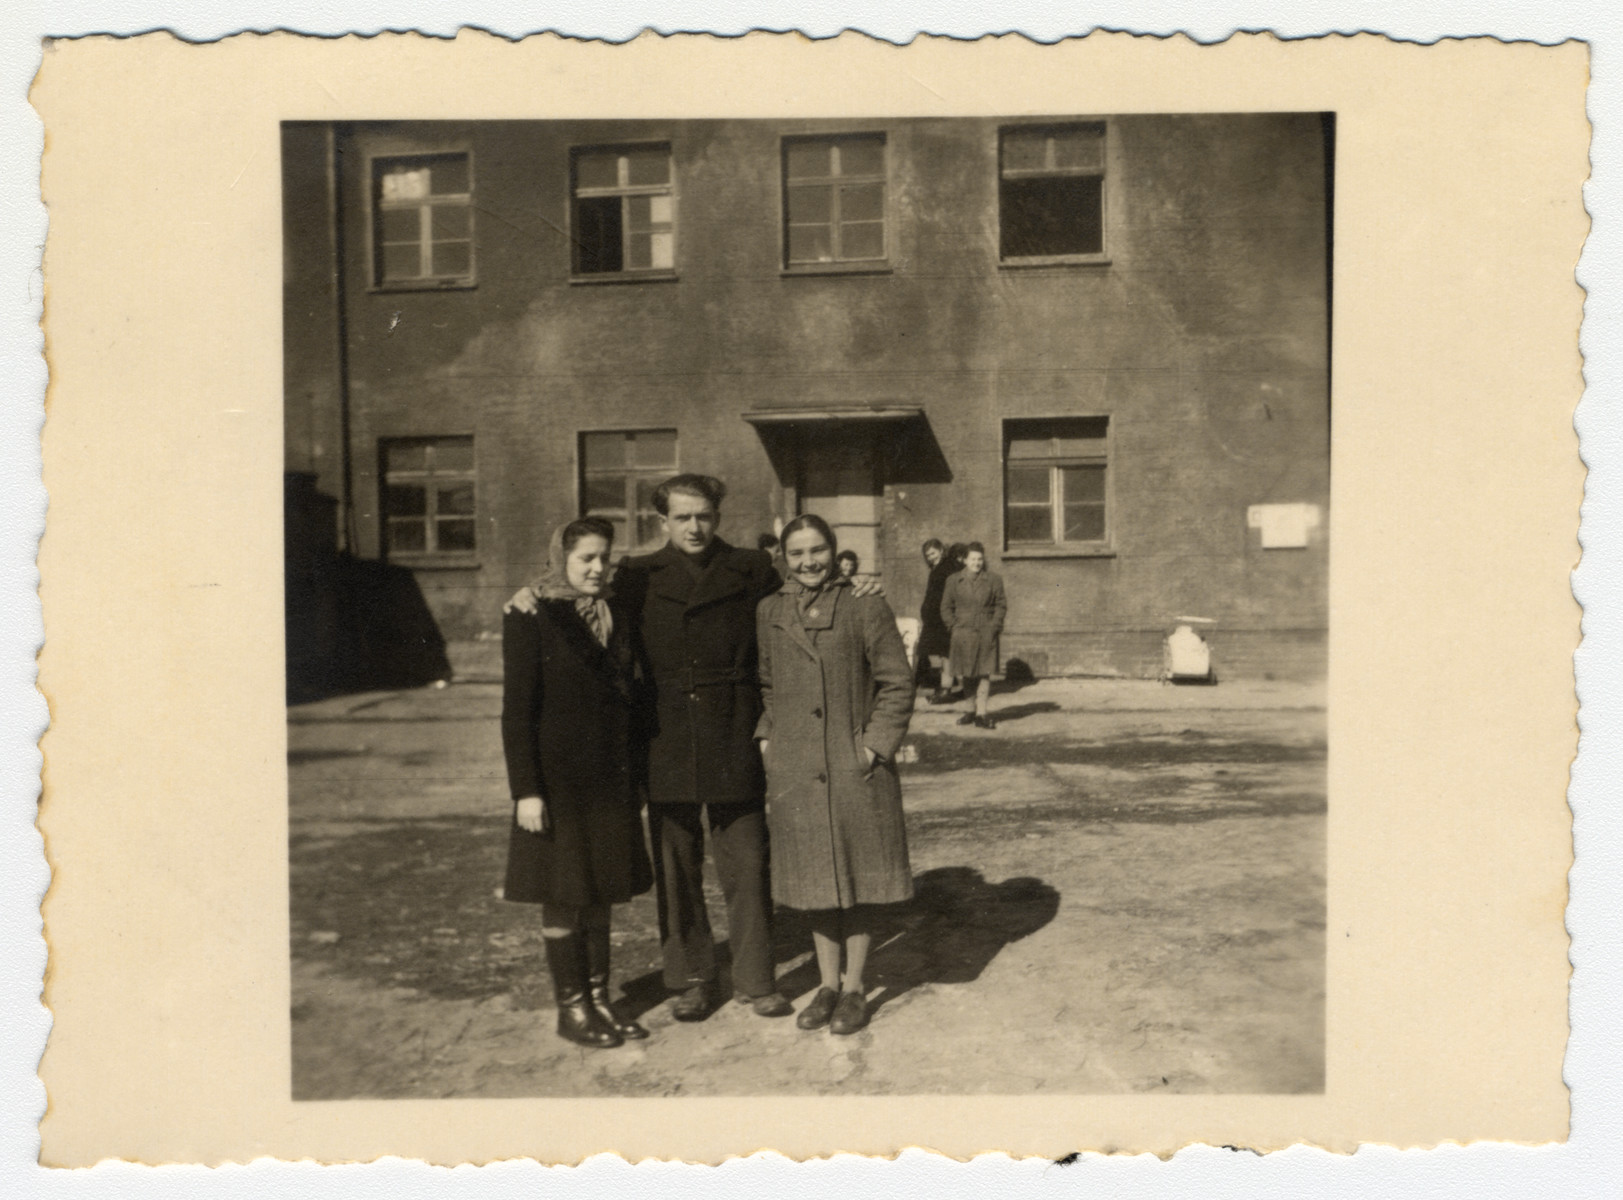 Willy and Ora Bogler and another woman pose in front of the entrance to their home at the kibbutz hachshara in Eschwege.